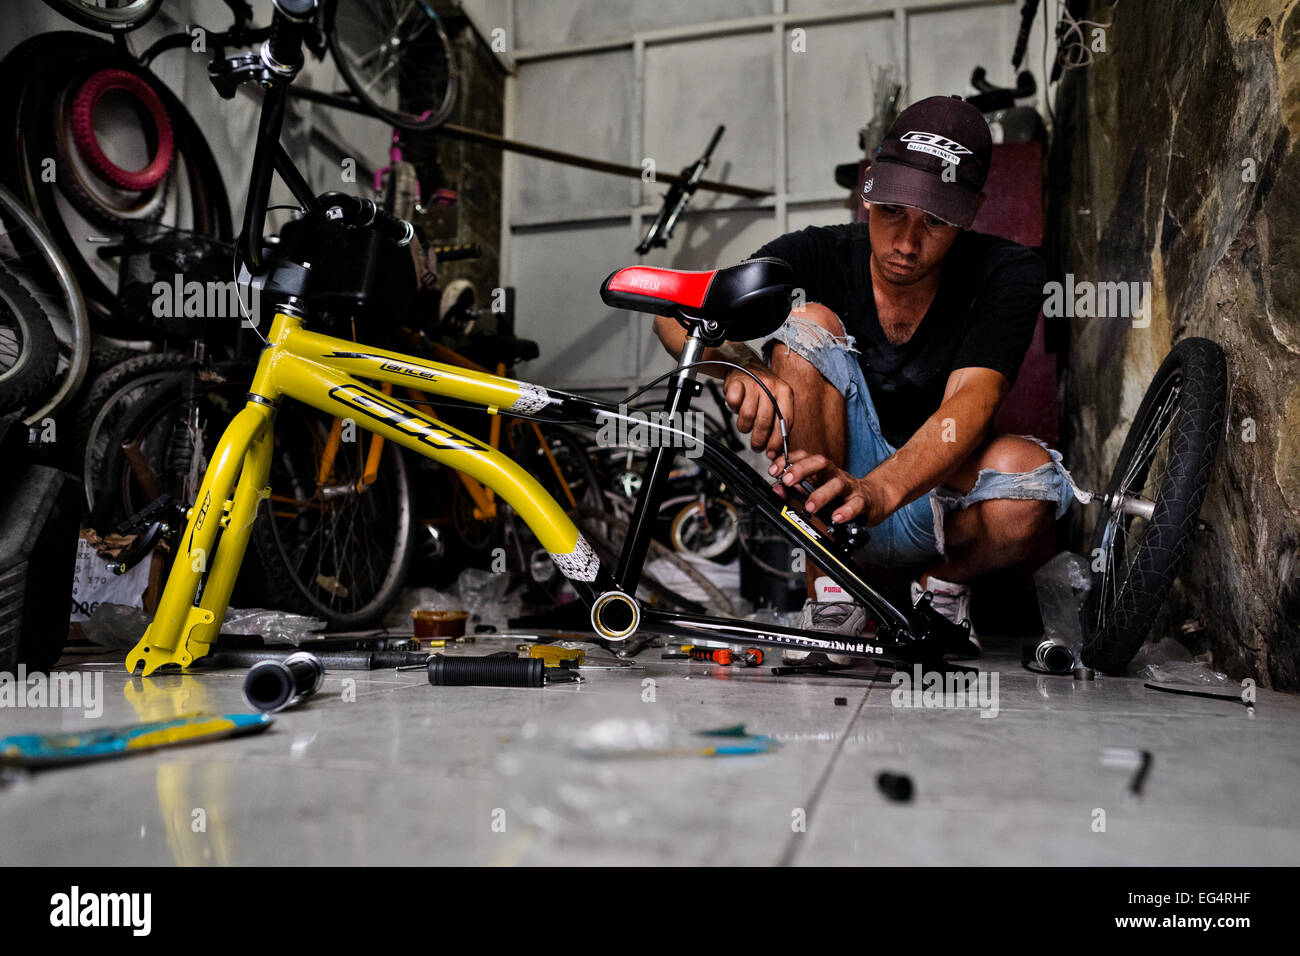 A bicycle mechanic assembles a custom made bike in a bicycle workshop in Cali, Colombia. - Stock Image